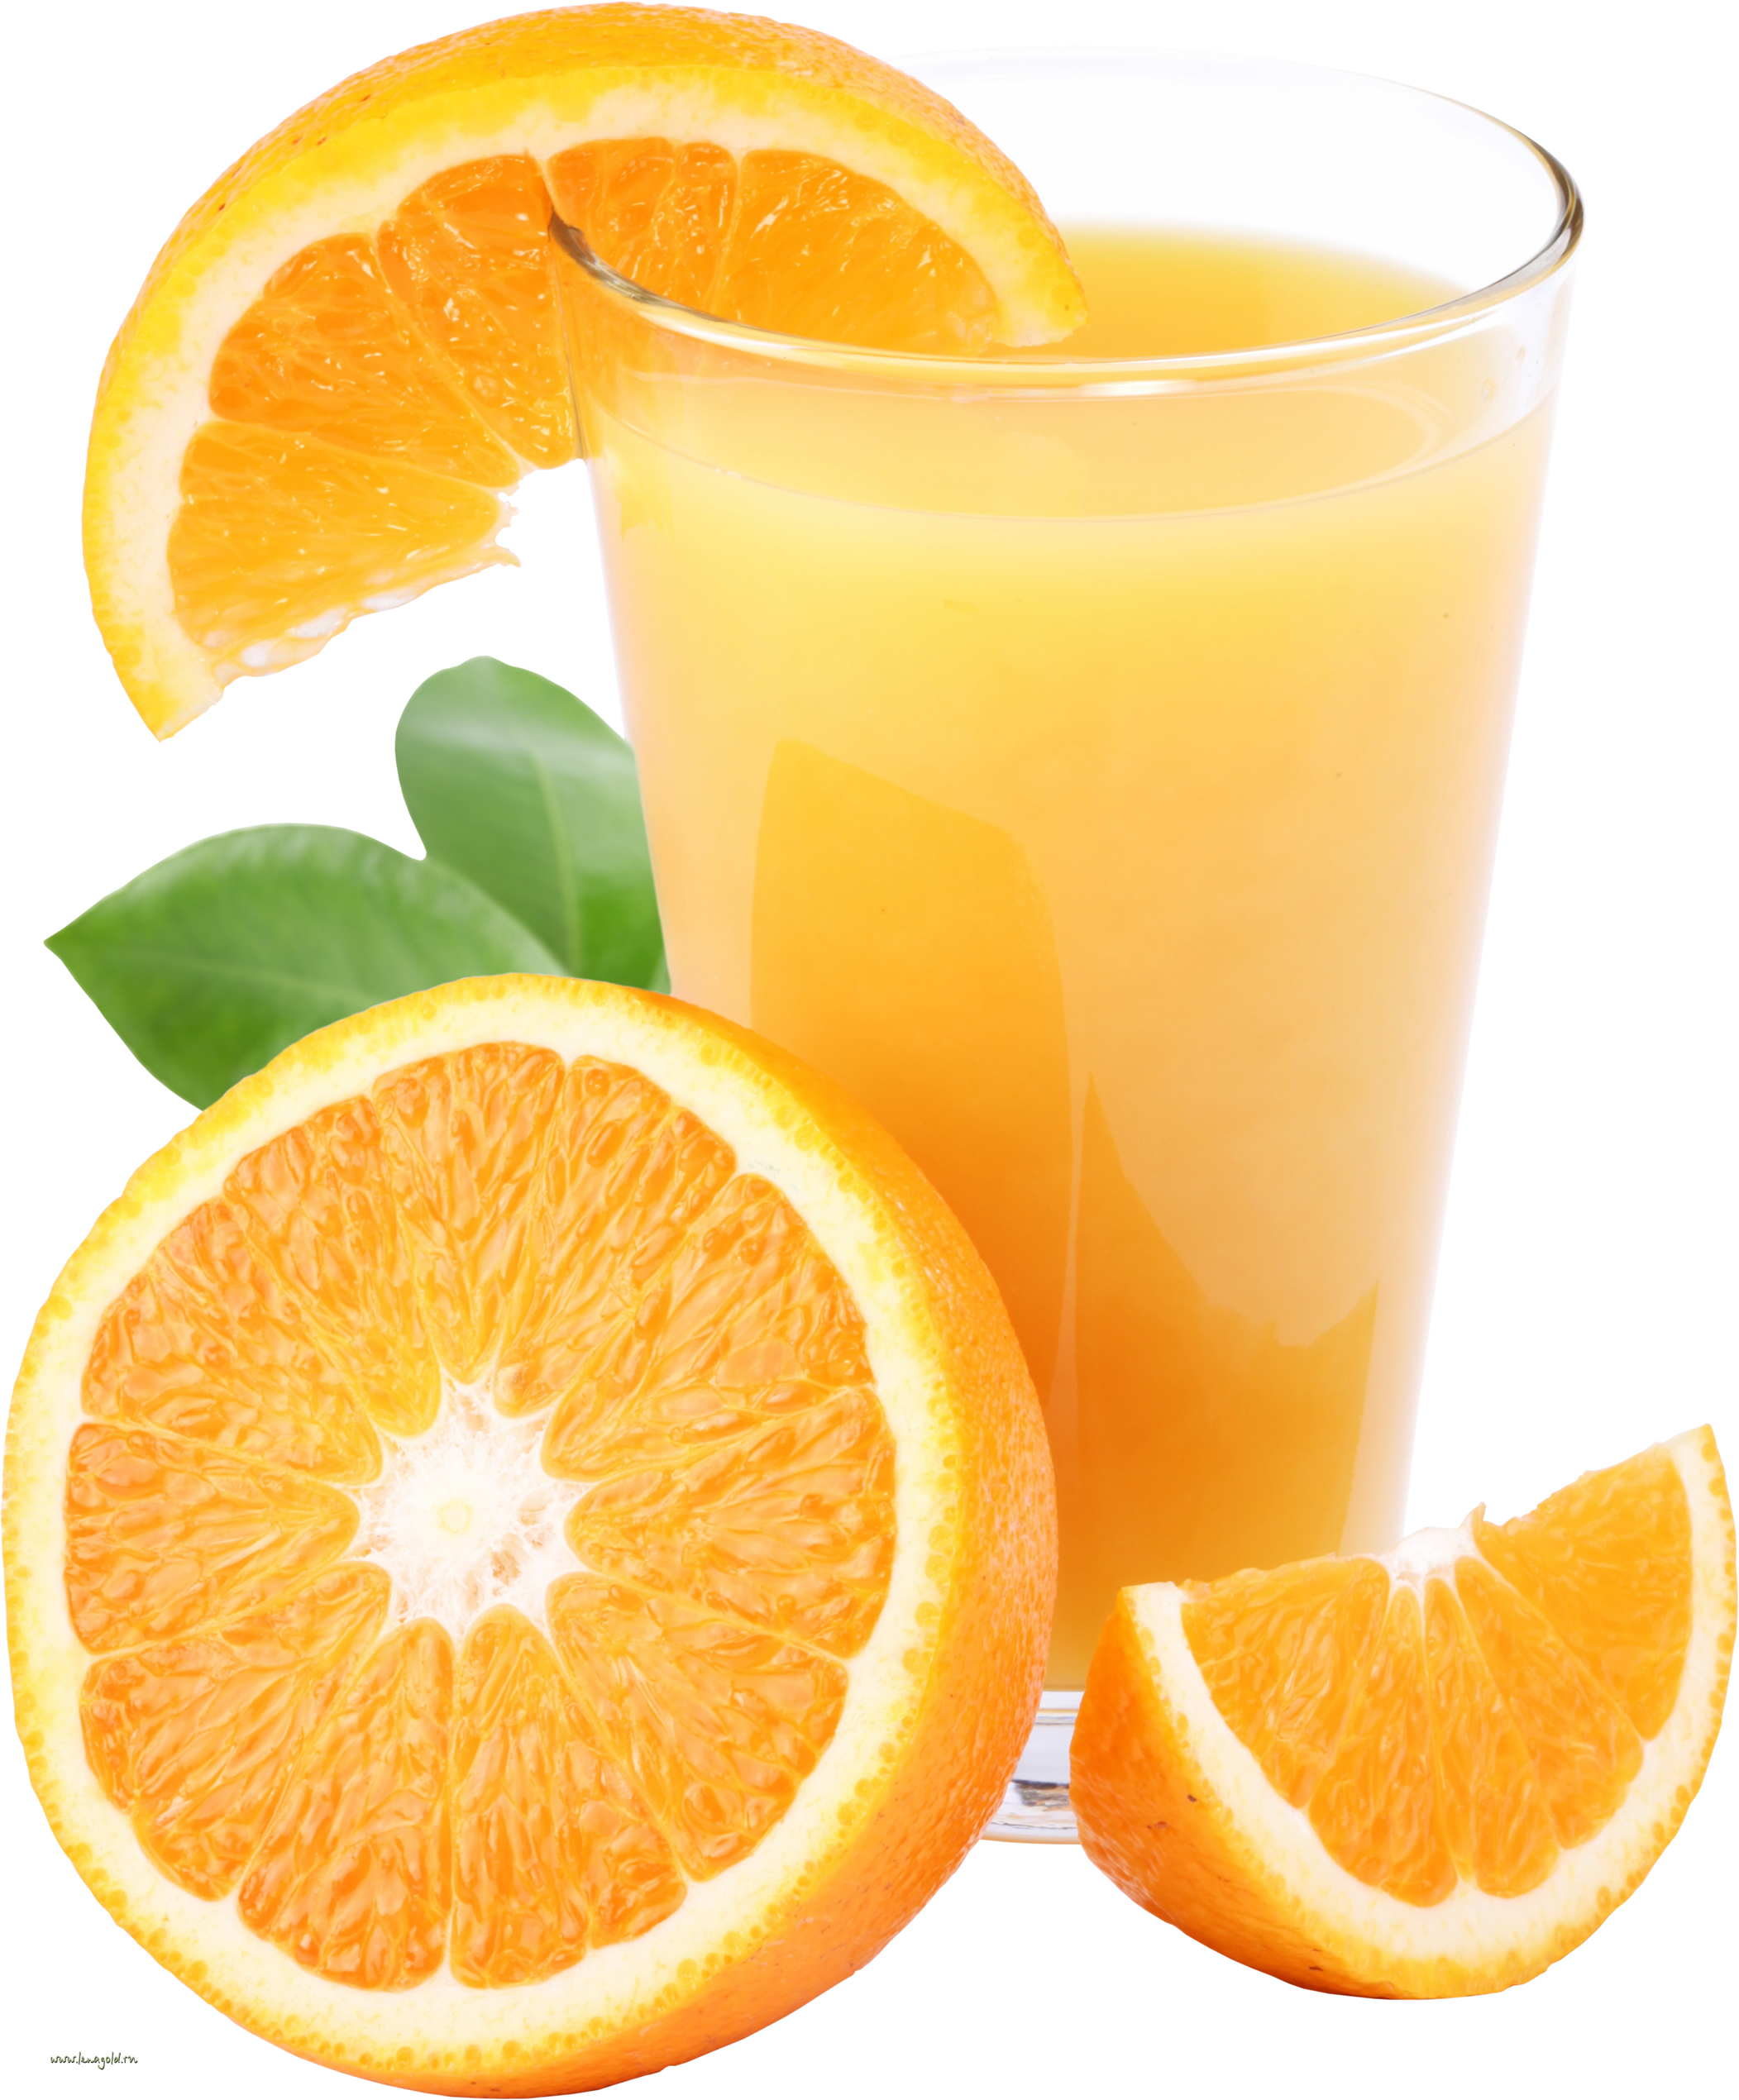 Download wallpaper orange juice photo download Oranges 2103x2540